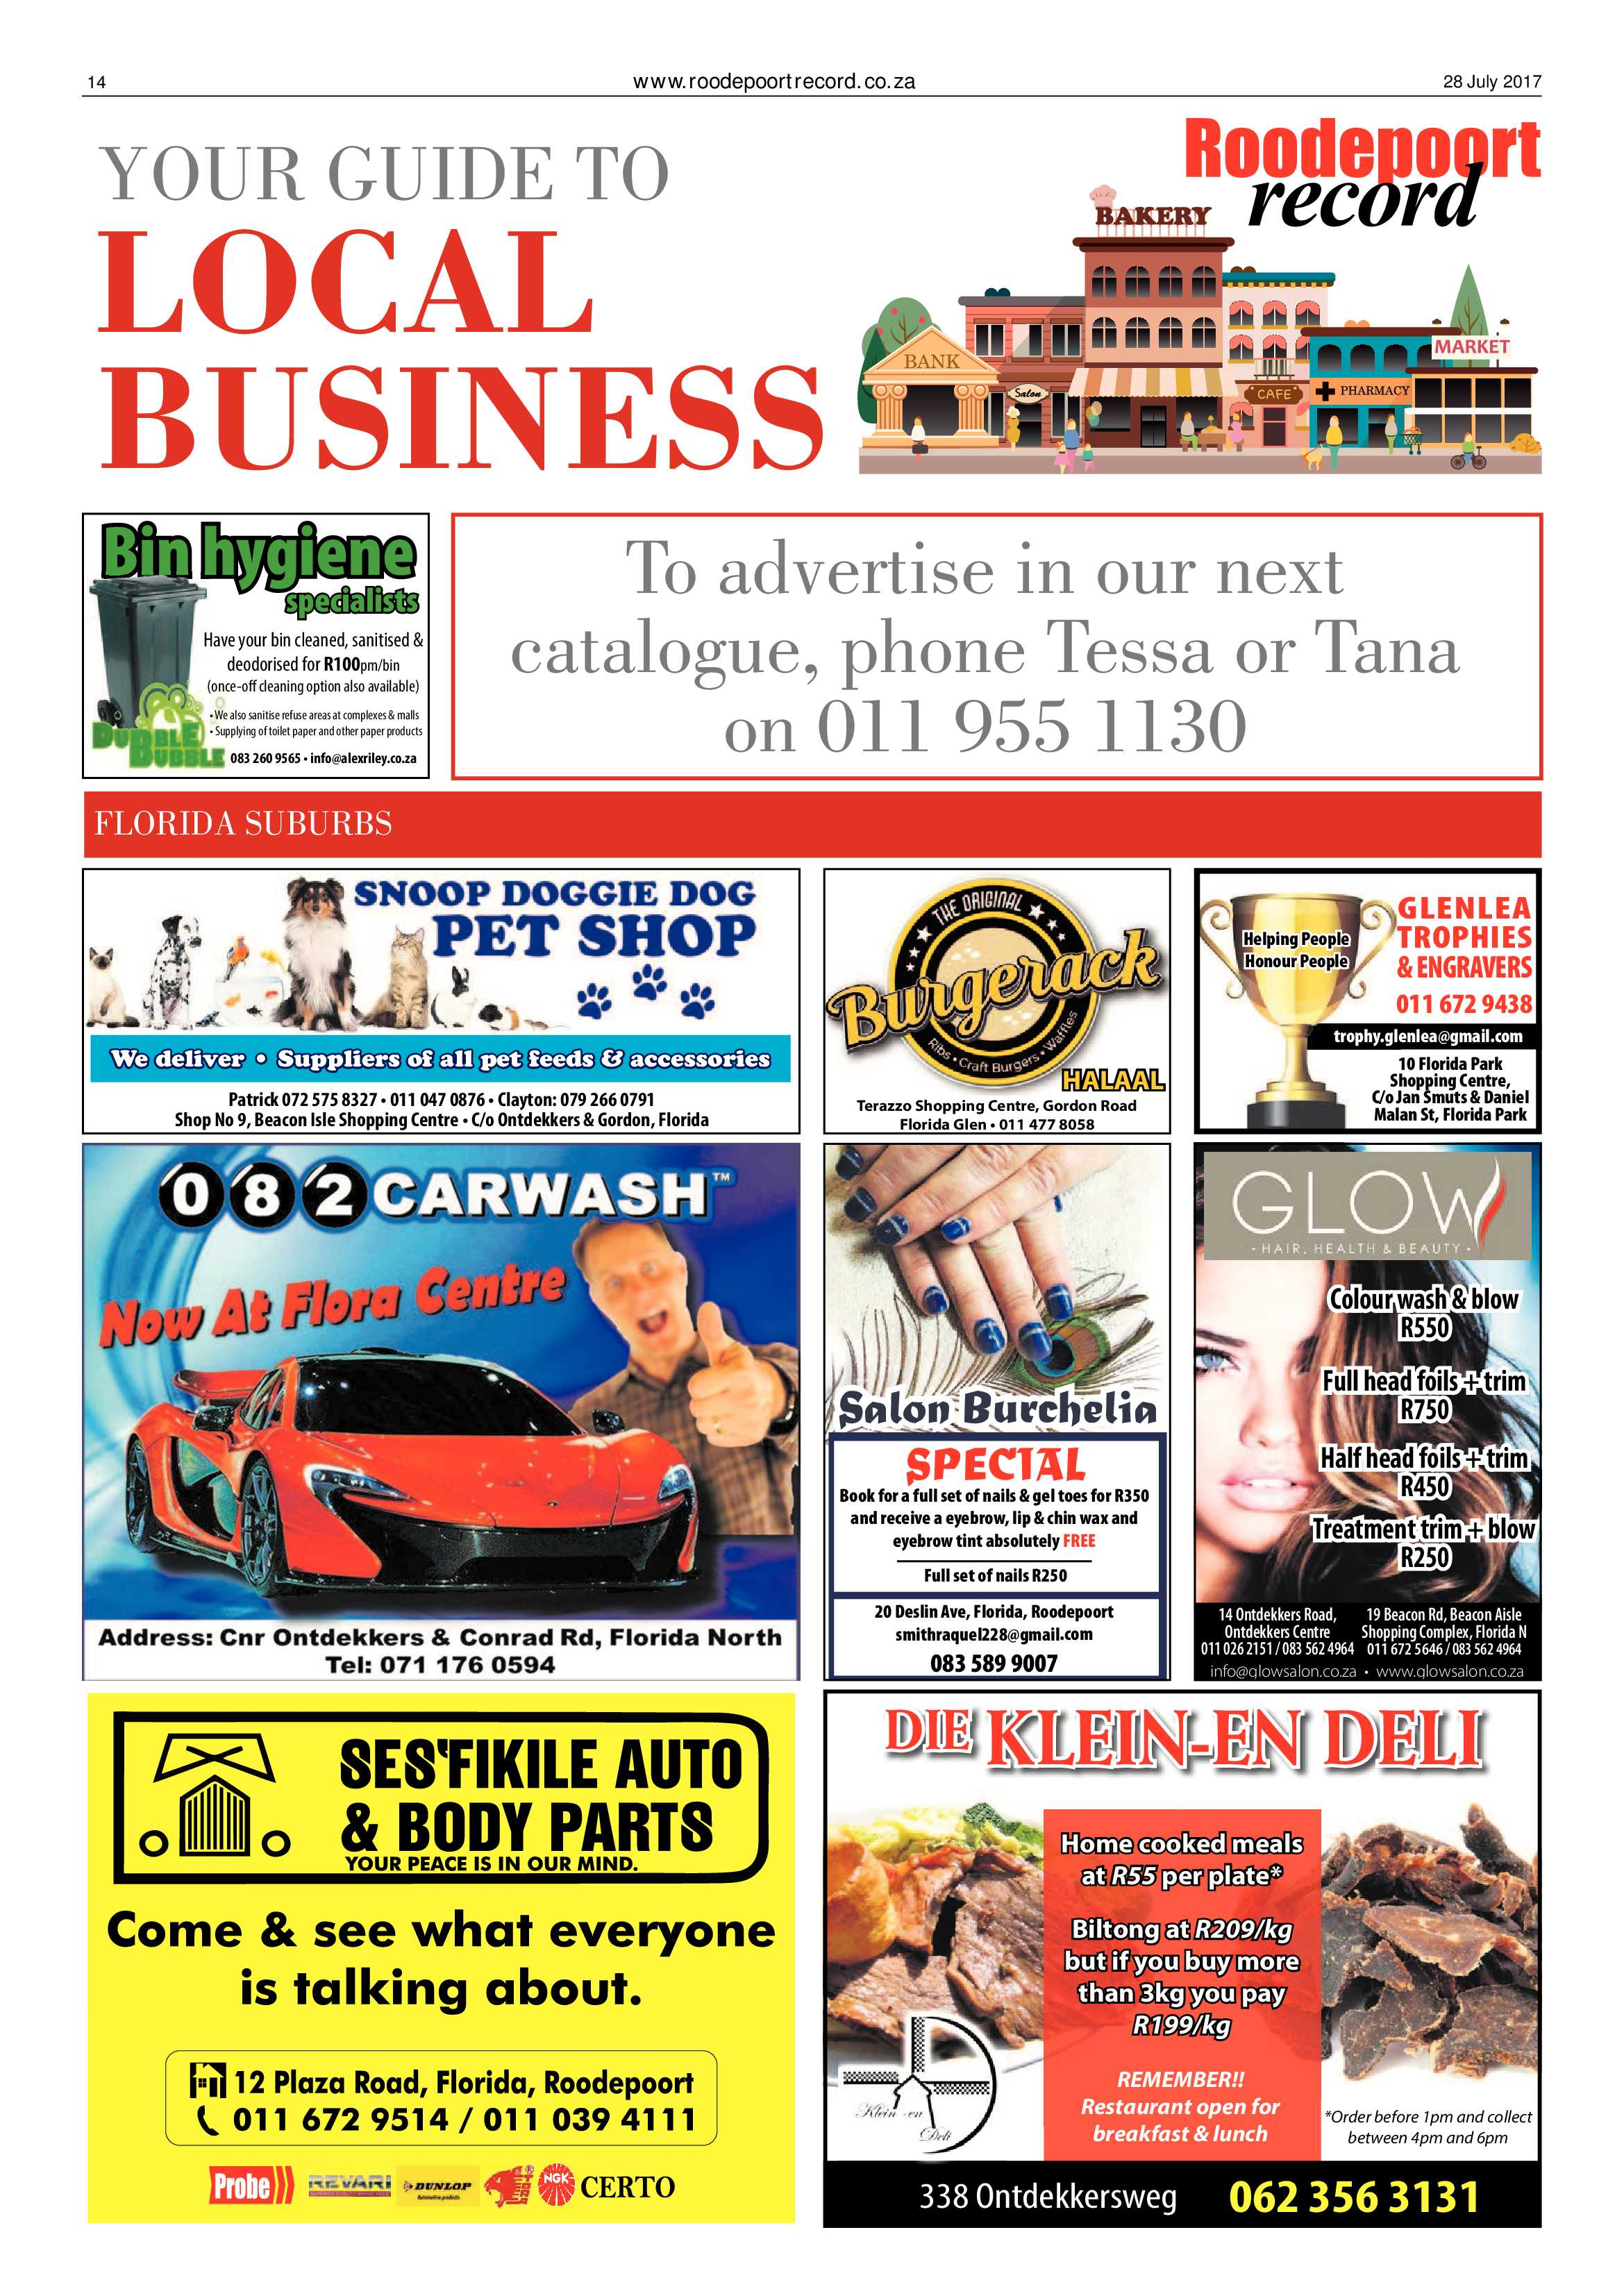 roodepoort-record-28-july-2017-epapers-page-14